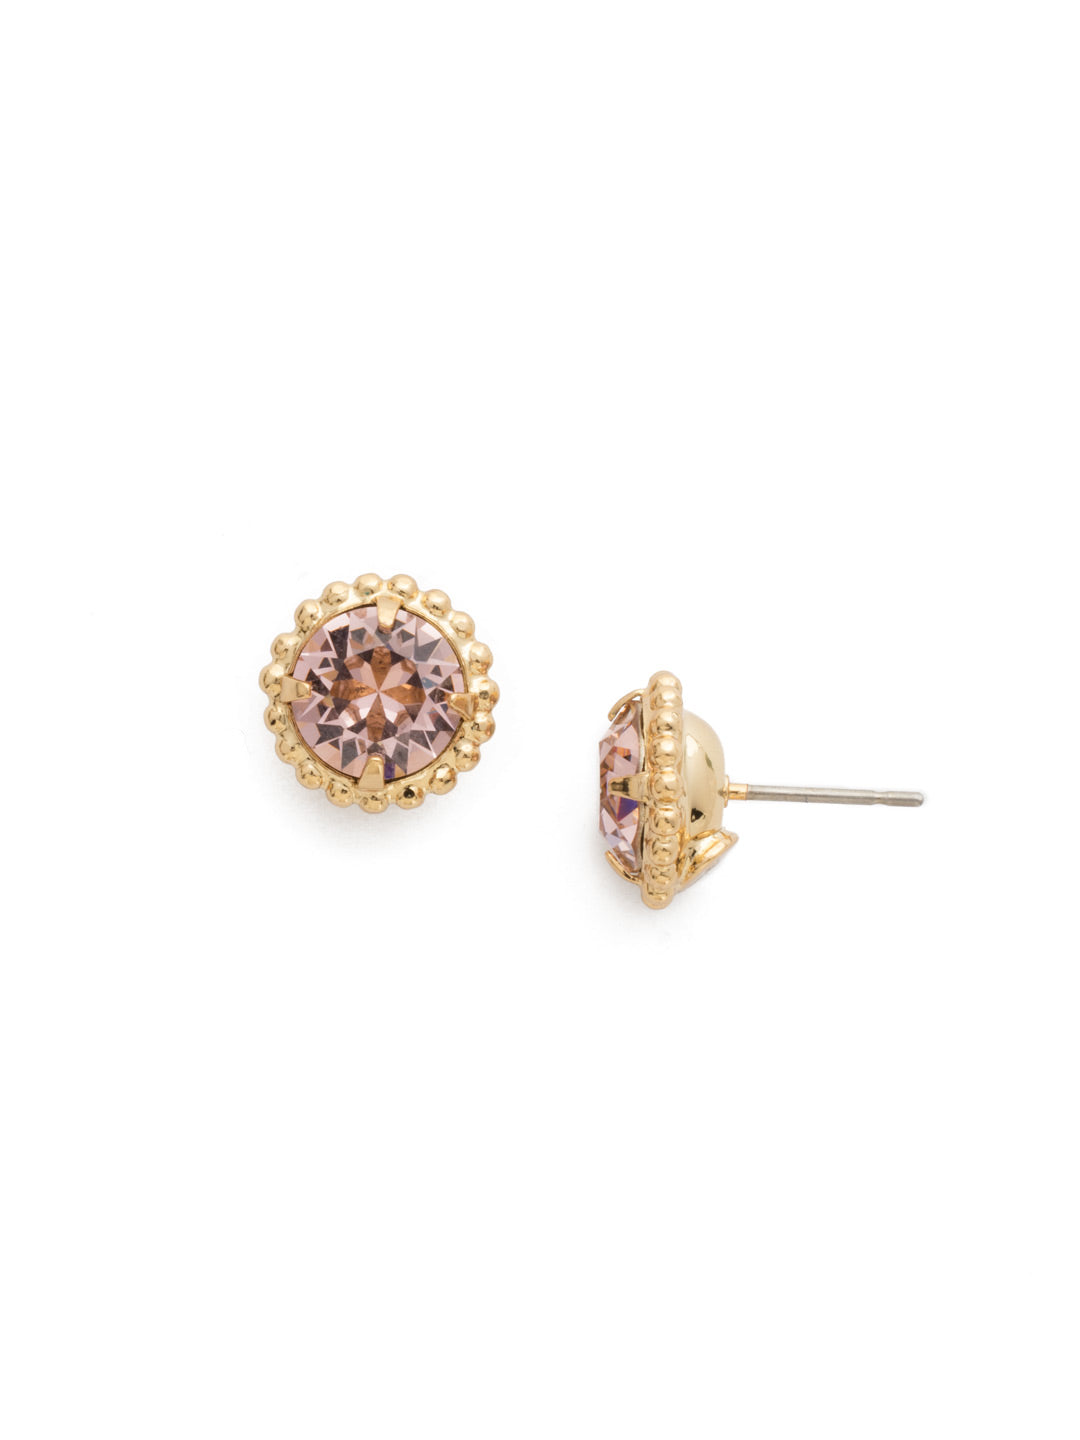 Simplicity Stud Earrings - EBY38BGVIN